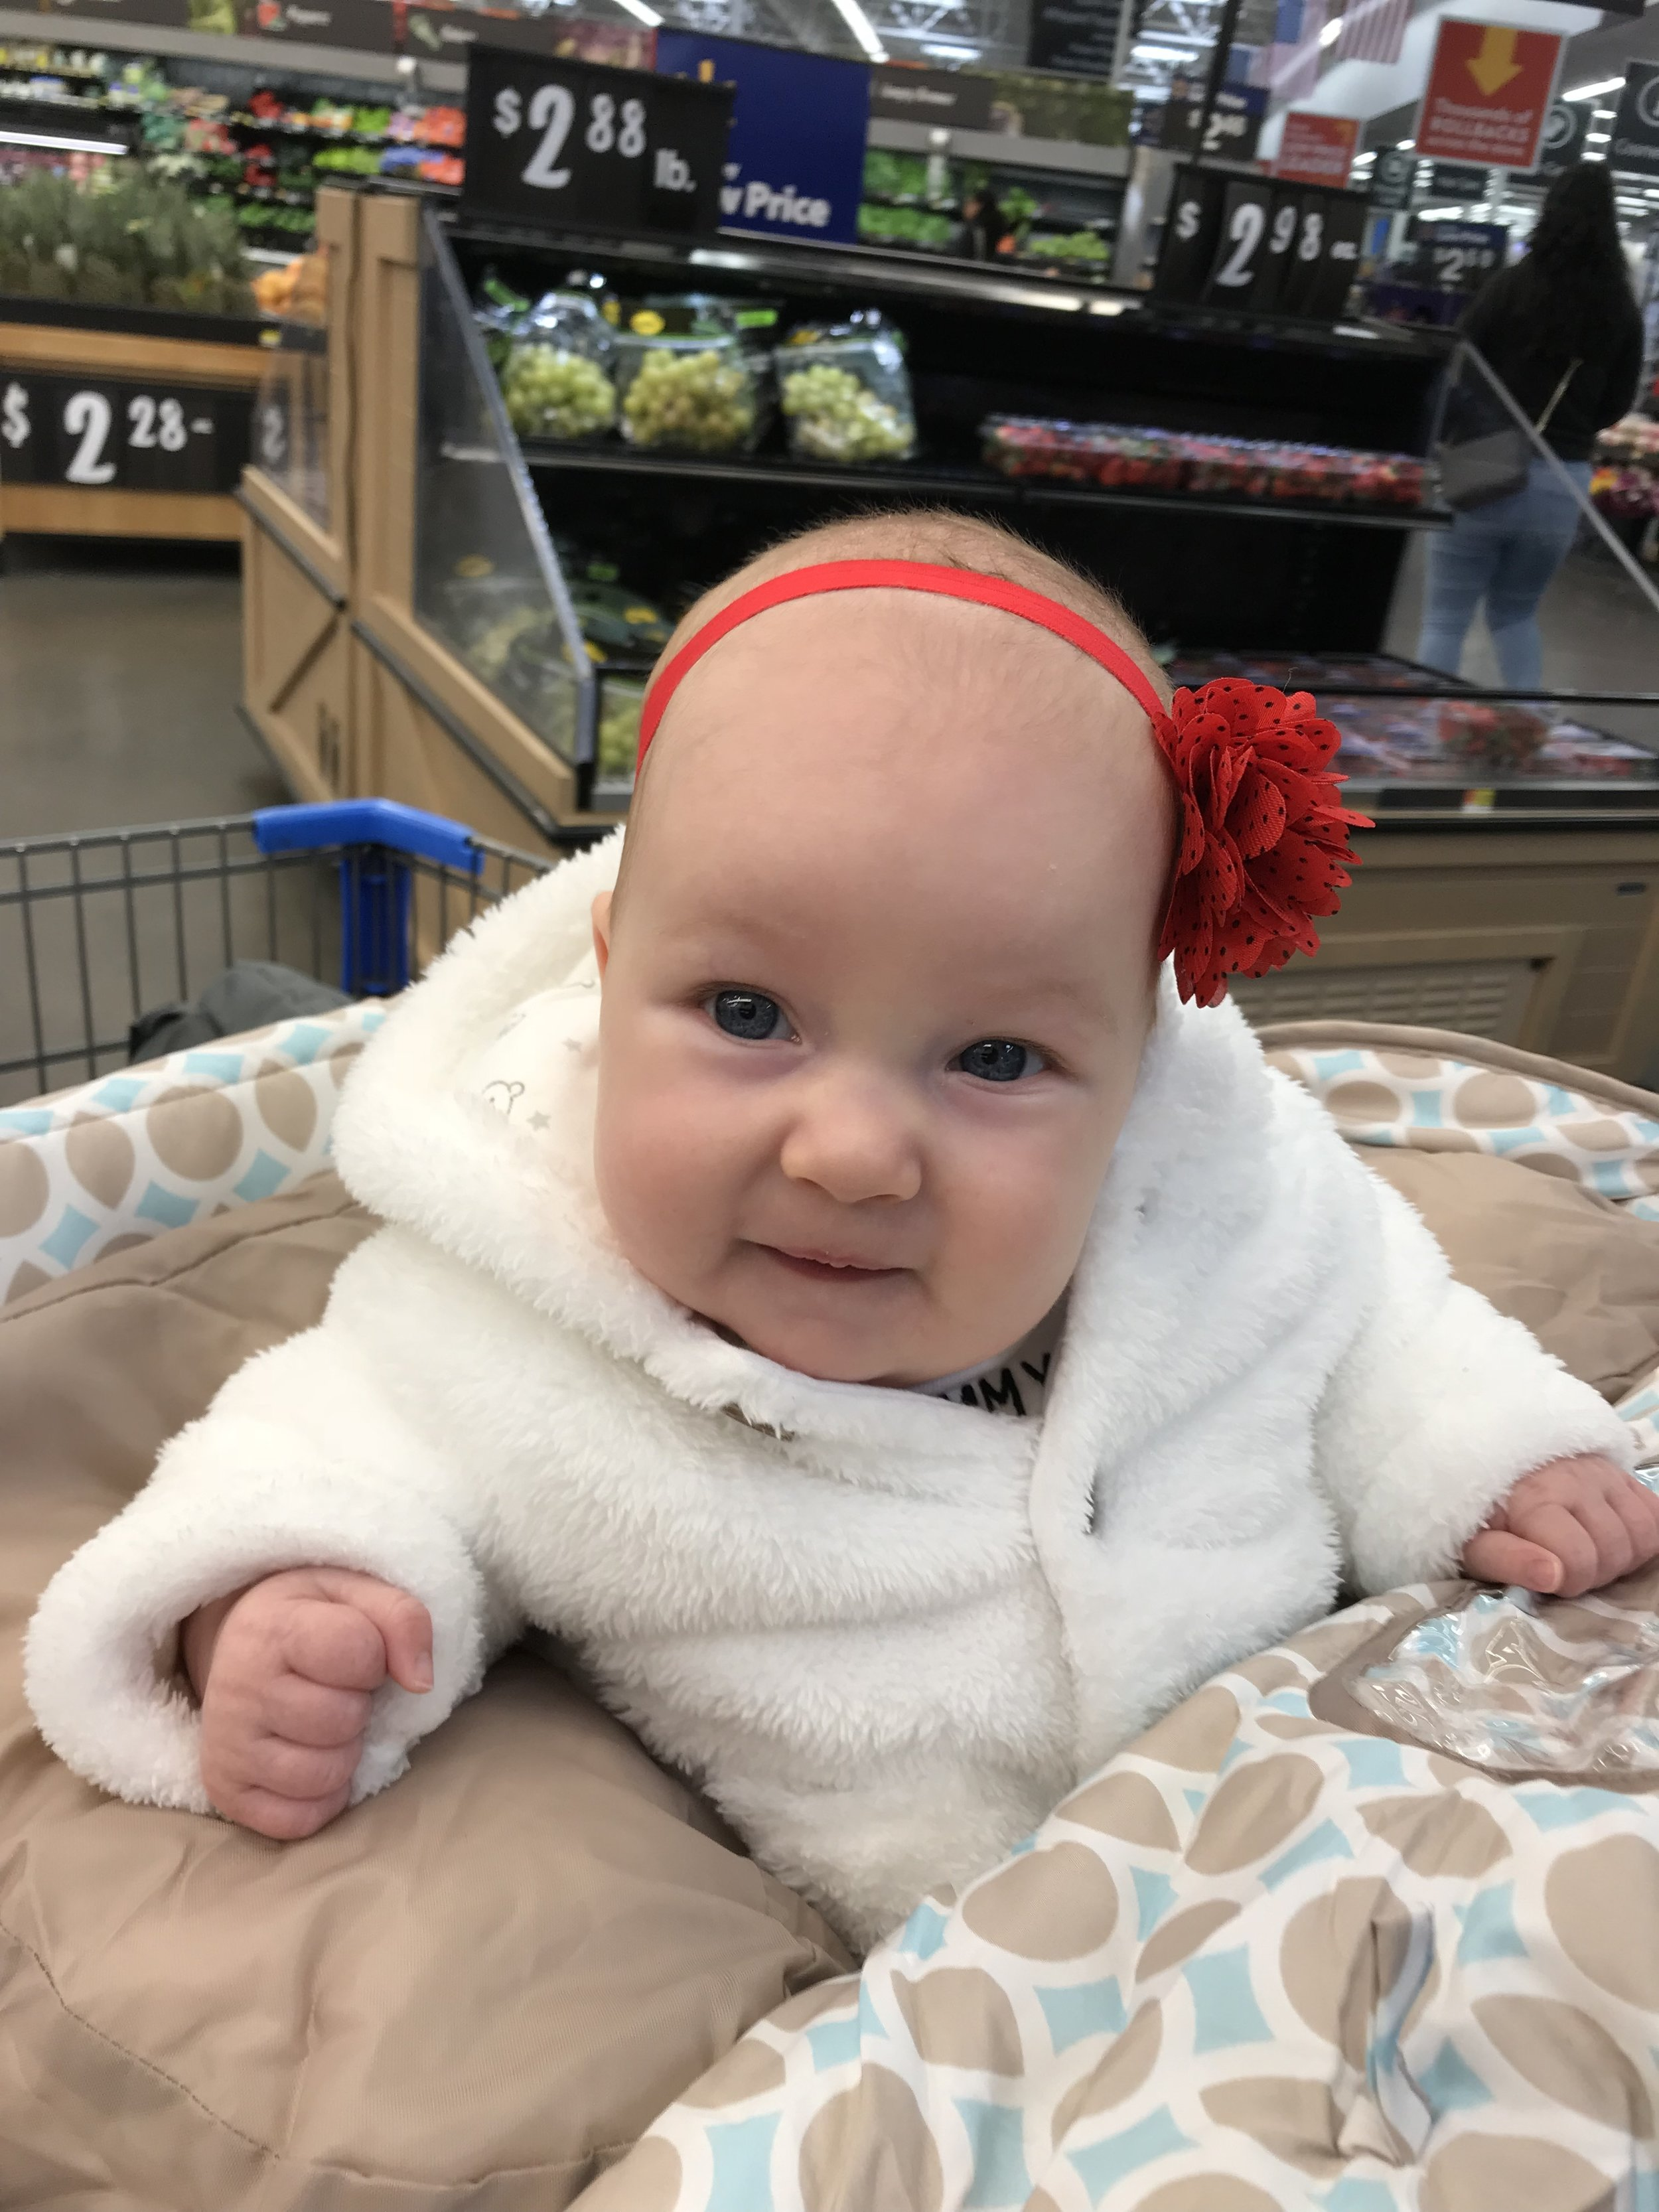 My Favorite Baby Product Series: Cart Covers